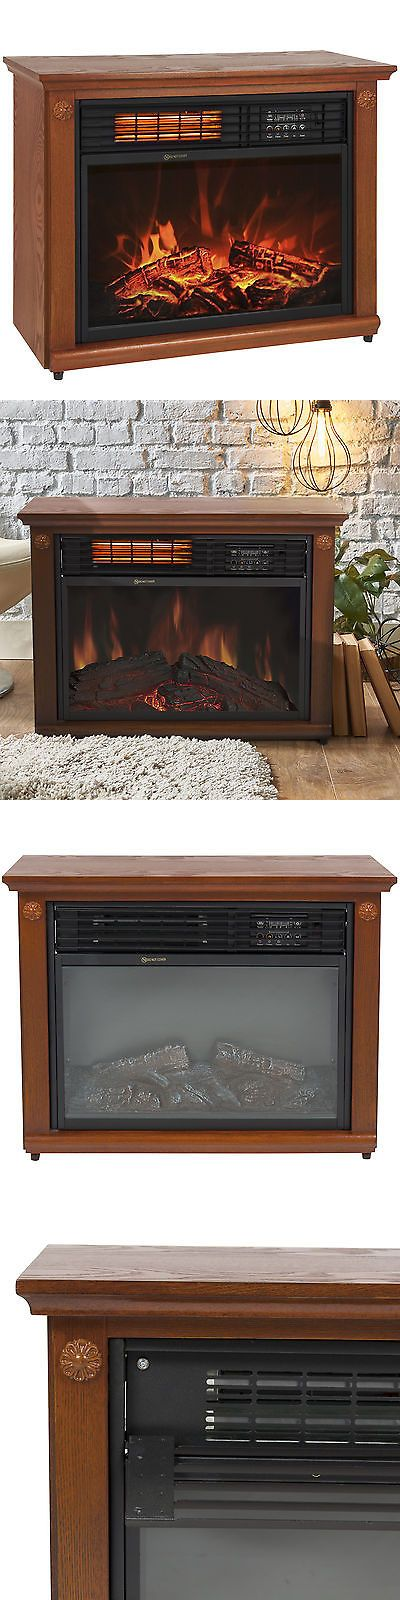 Fireplaces 175756: Large Room Infrared Quartz Electric Fireplace Heater Honey Oak Finish W Remote -> BUY IT NOW ONLY: $119.95 on eBay!